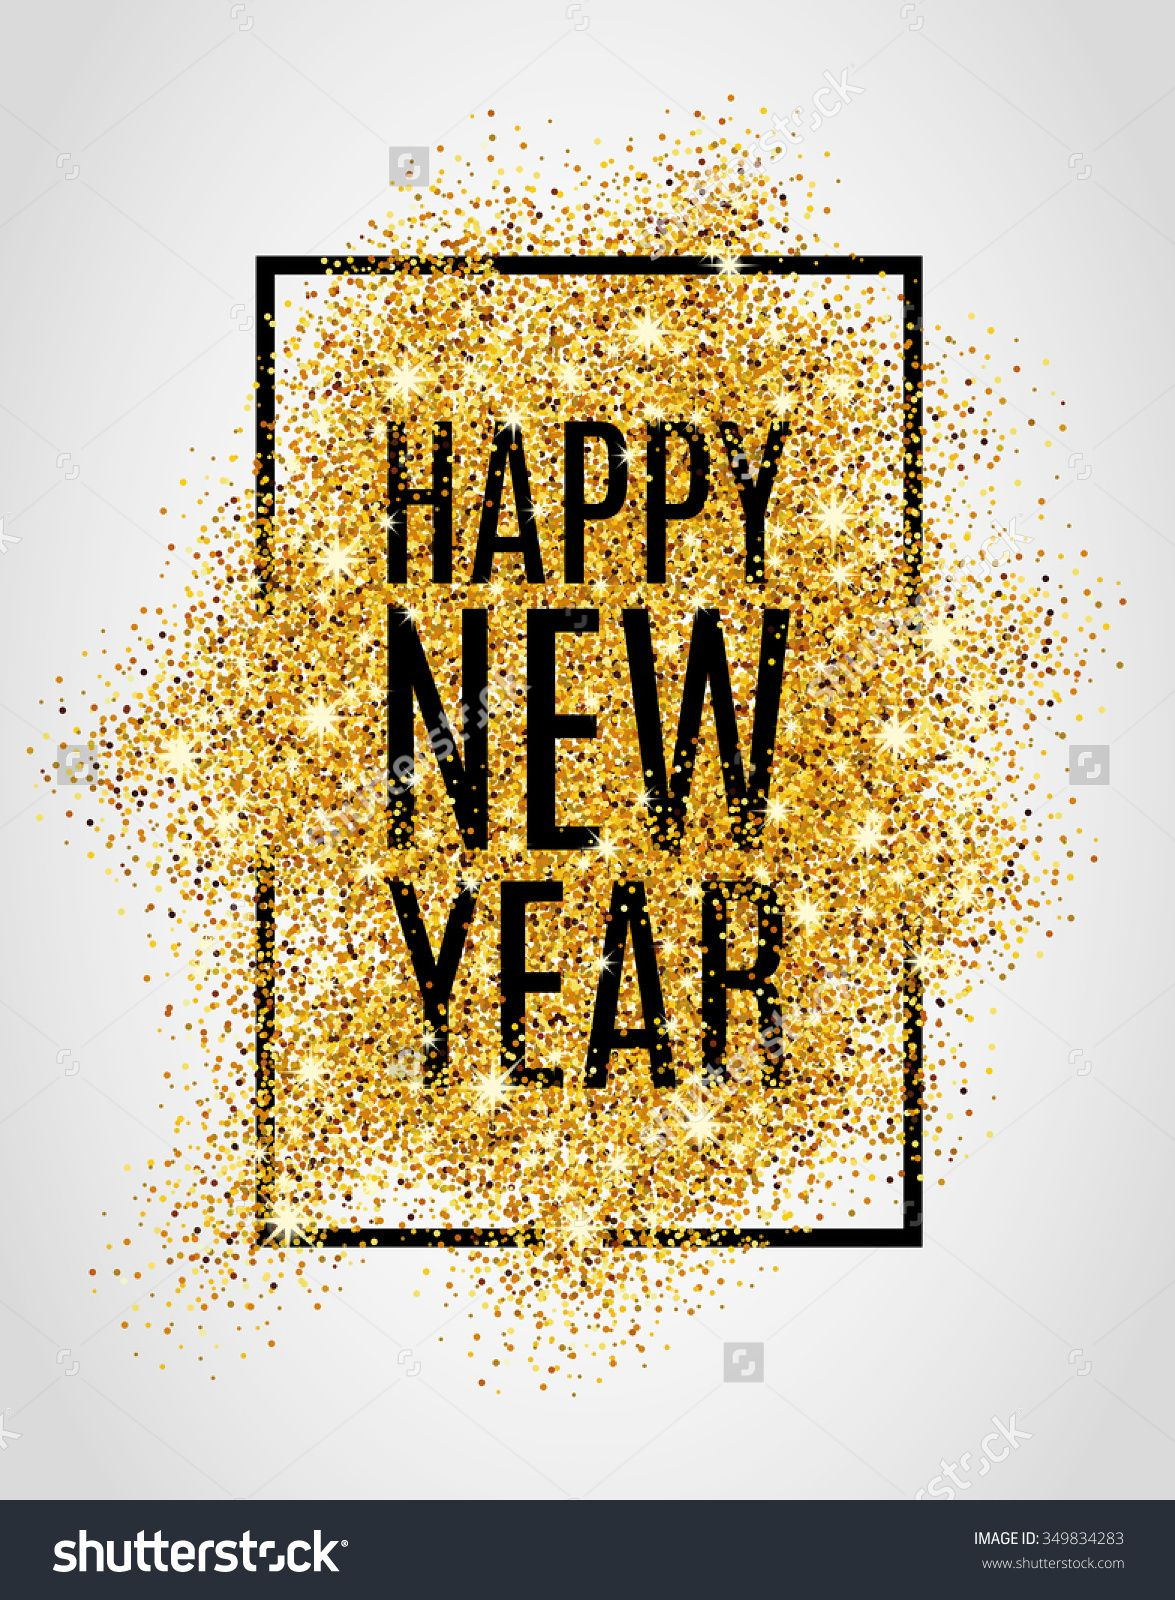 Top 100 most amazing happy new year wishes greetings quotes - Happy New Year Gold Glitter New Year Gold Background For Flyer Poster